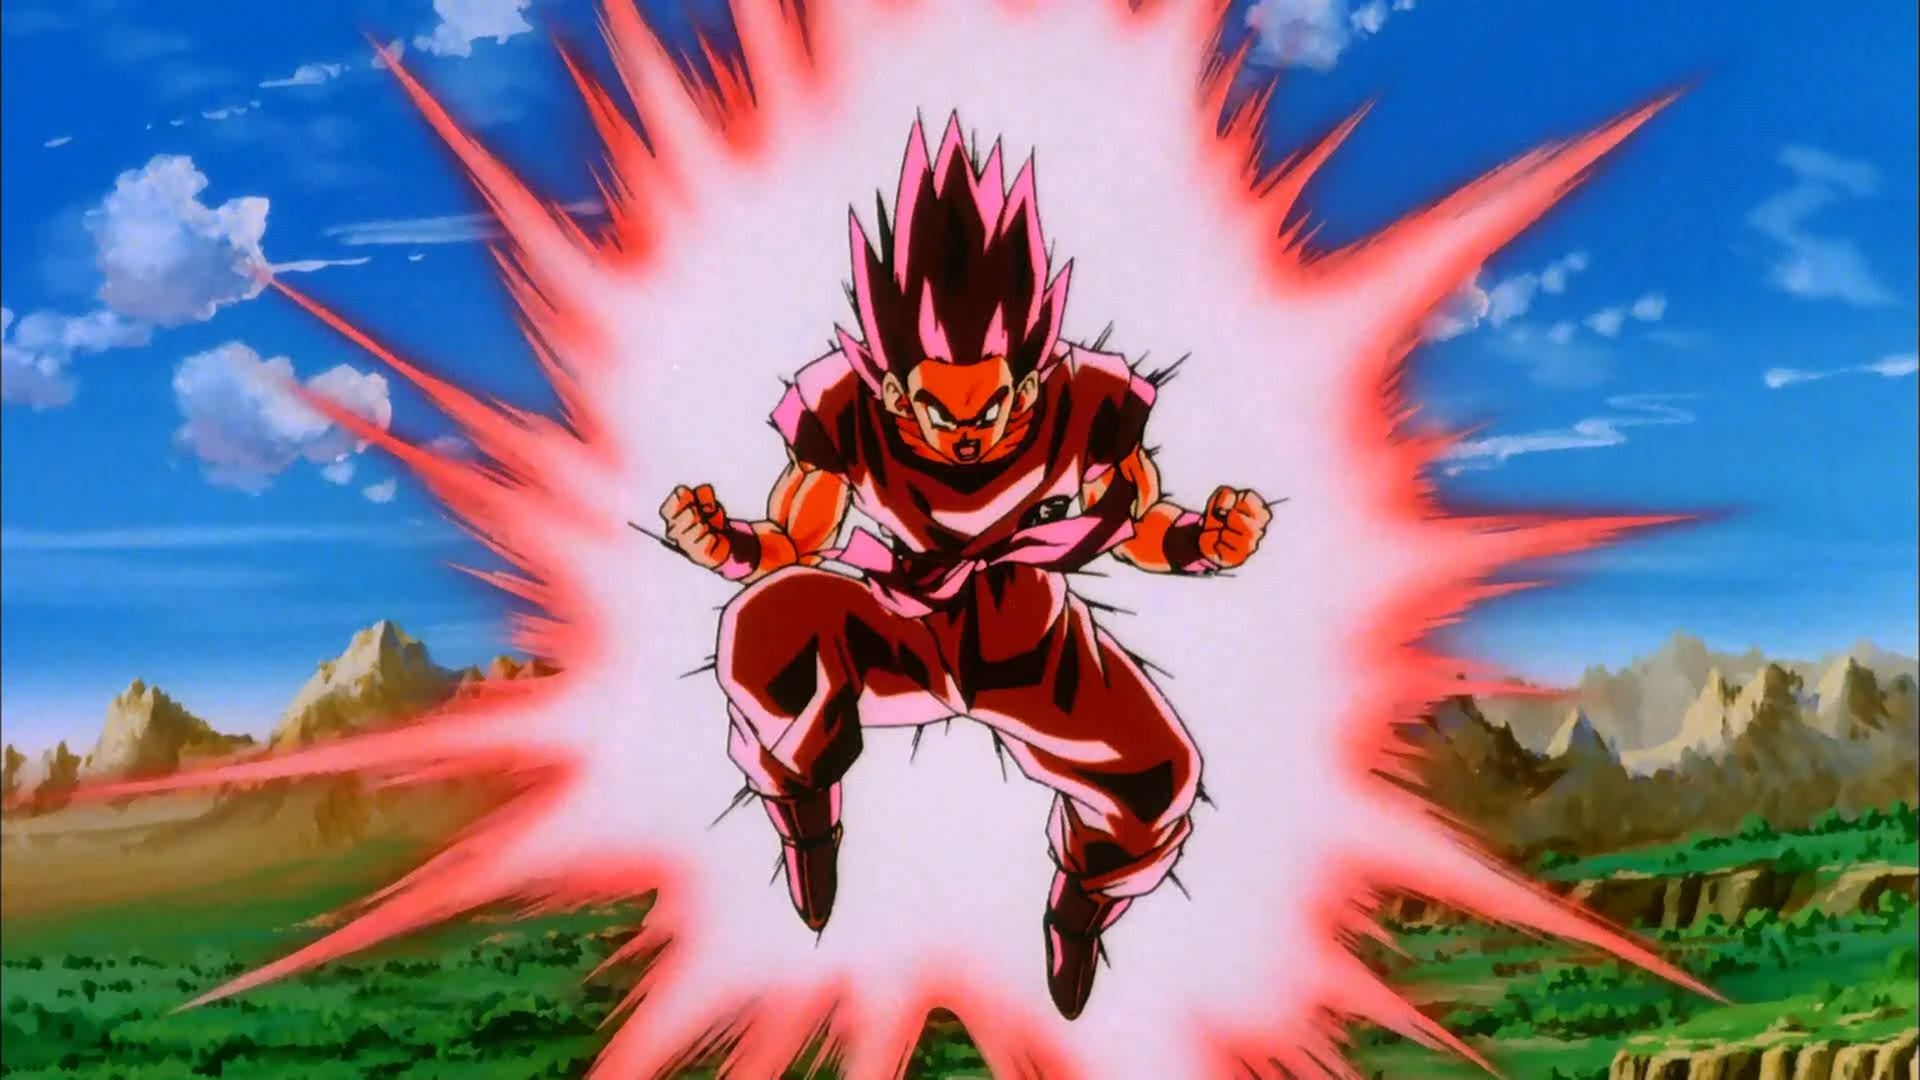 The Kaioken transformation, while not the strongest, definitely adds an interesting change to combat